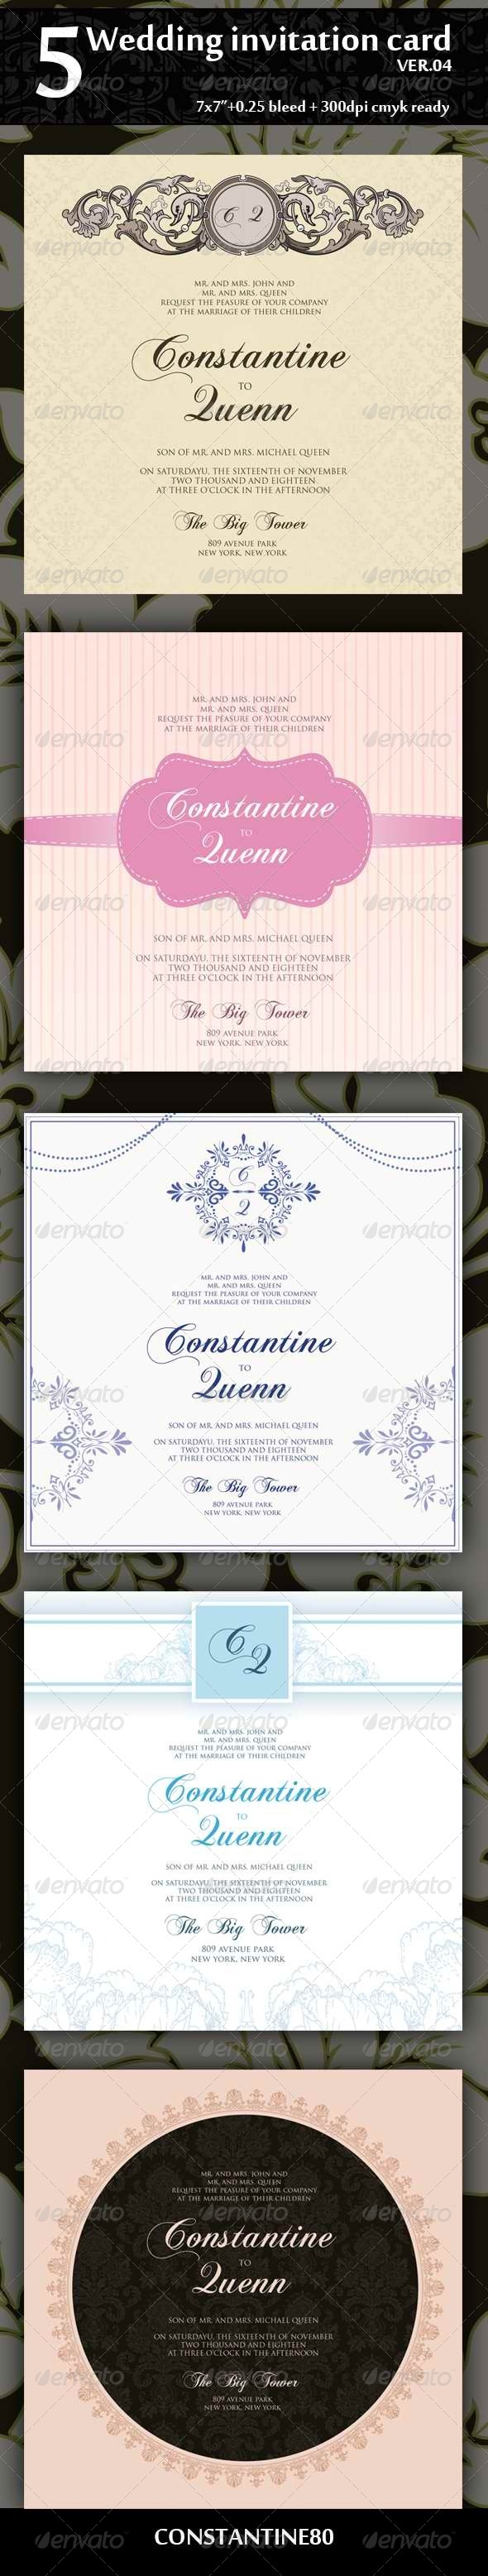 5 Wedding Invitation 7x7 Ver.04